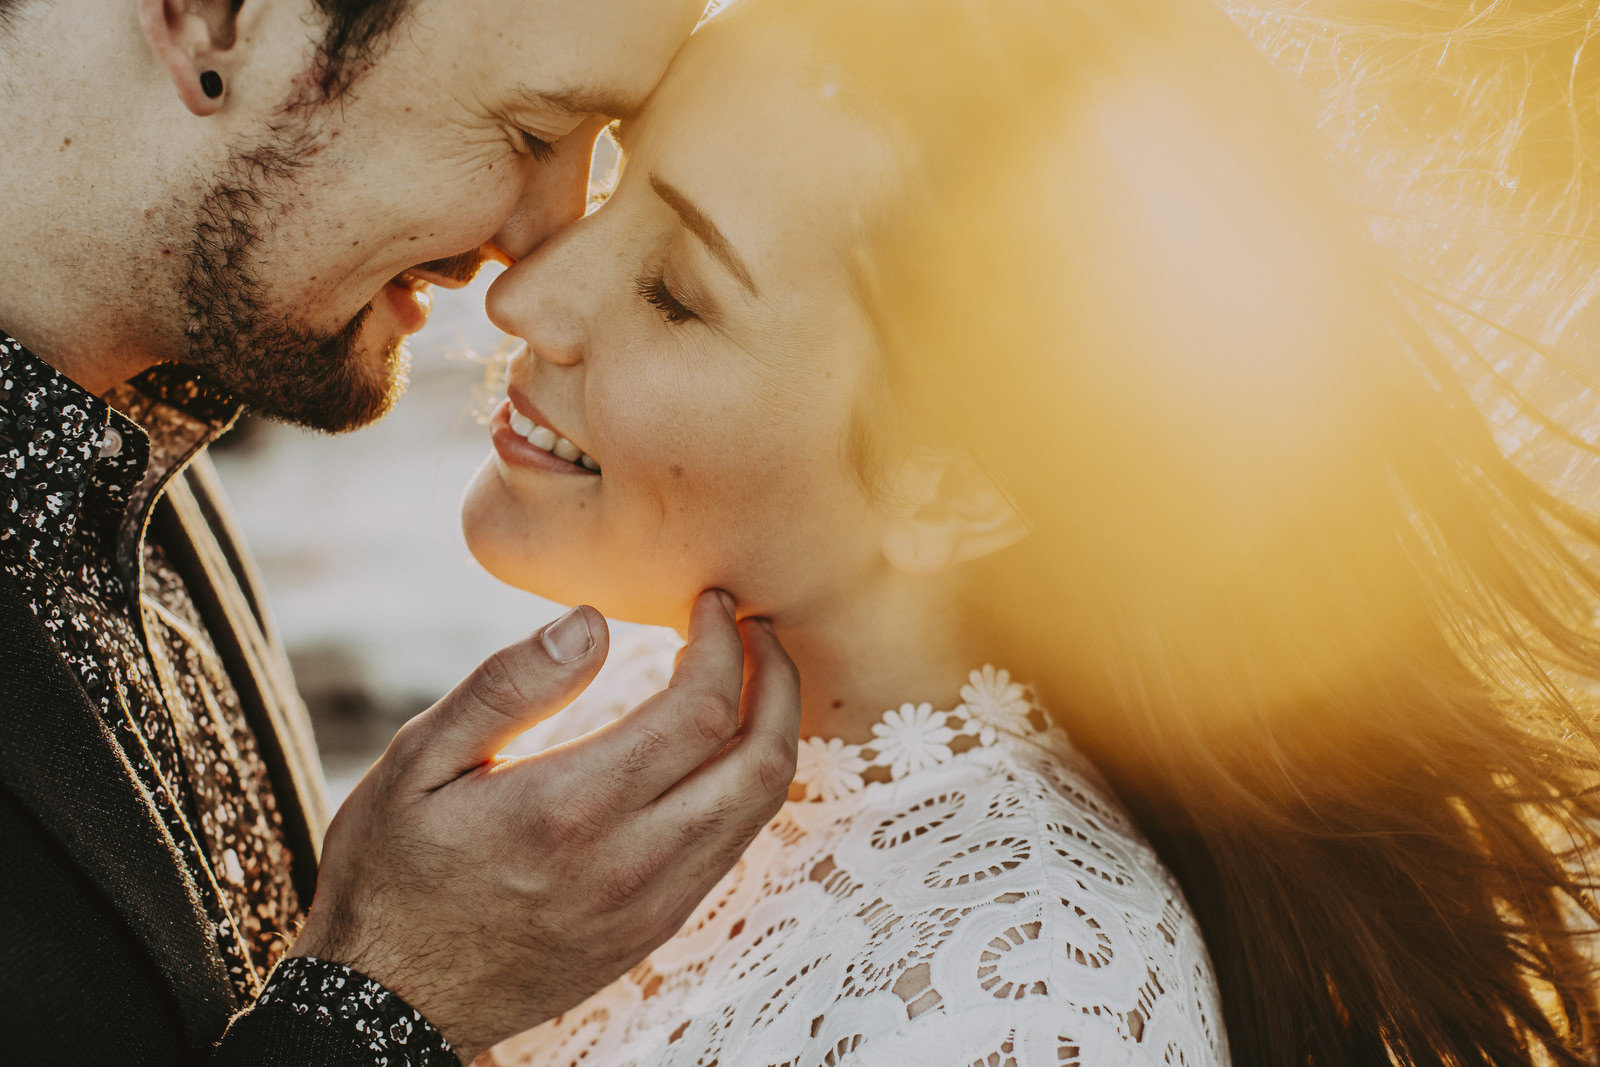 athena-and-camron-sydney-wedding-boho-romance-james-simmons-photography-christian-couple-goals92